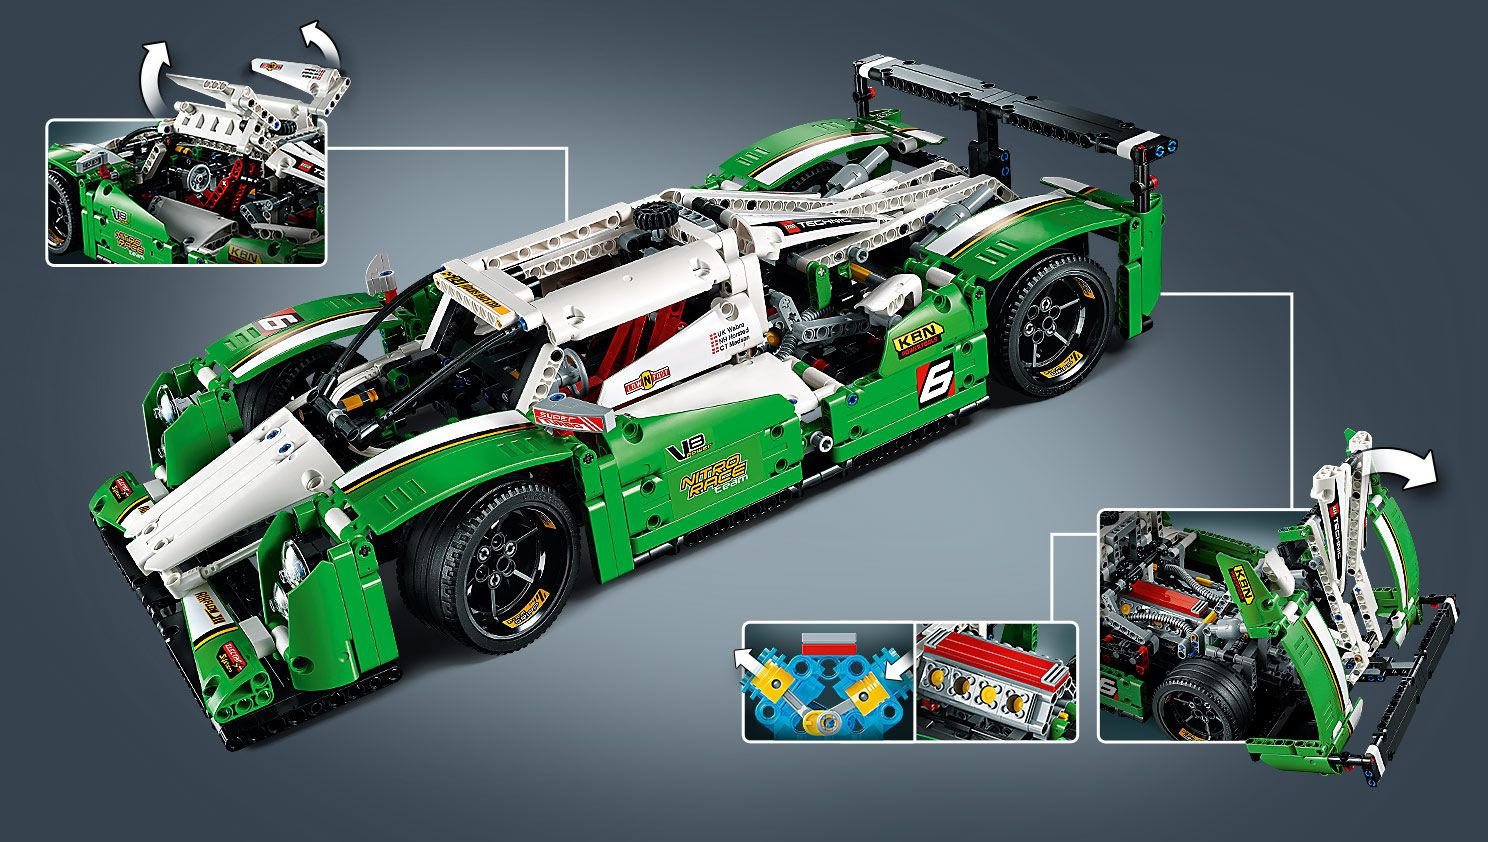 42039 suv racer products home technic toys pinterest lego and lego technic. Black Bedroom Furniture Sets. Home Design Ideas